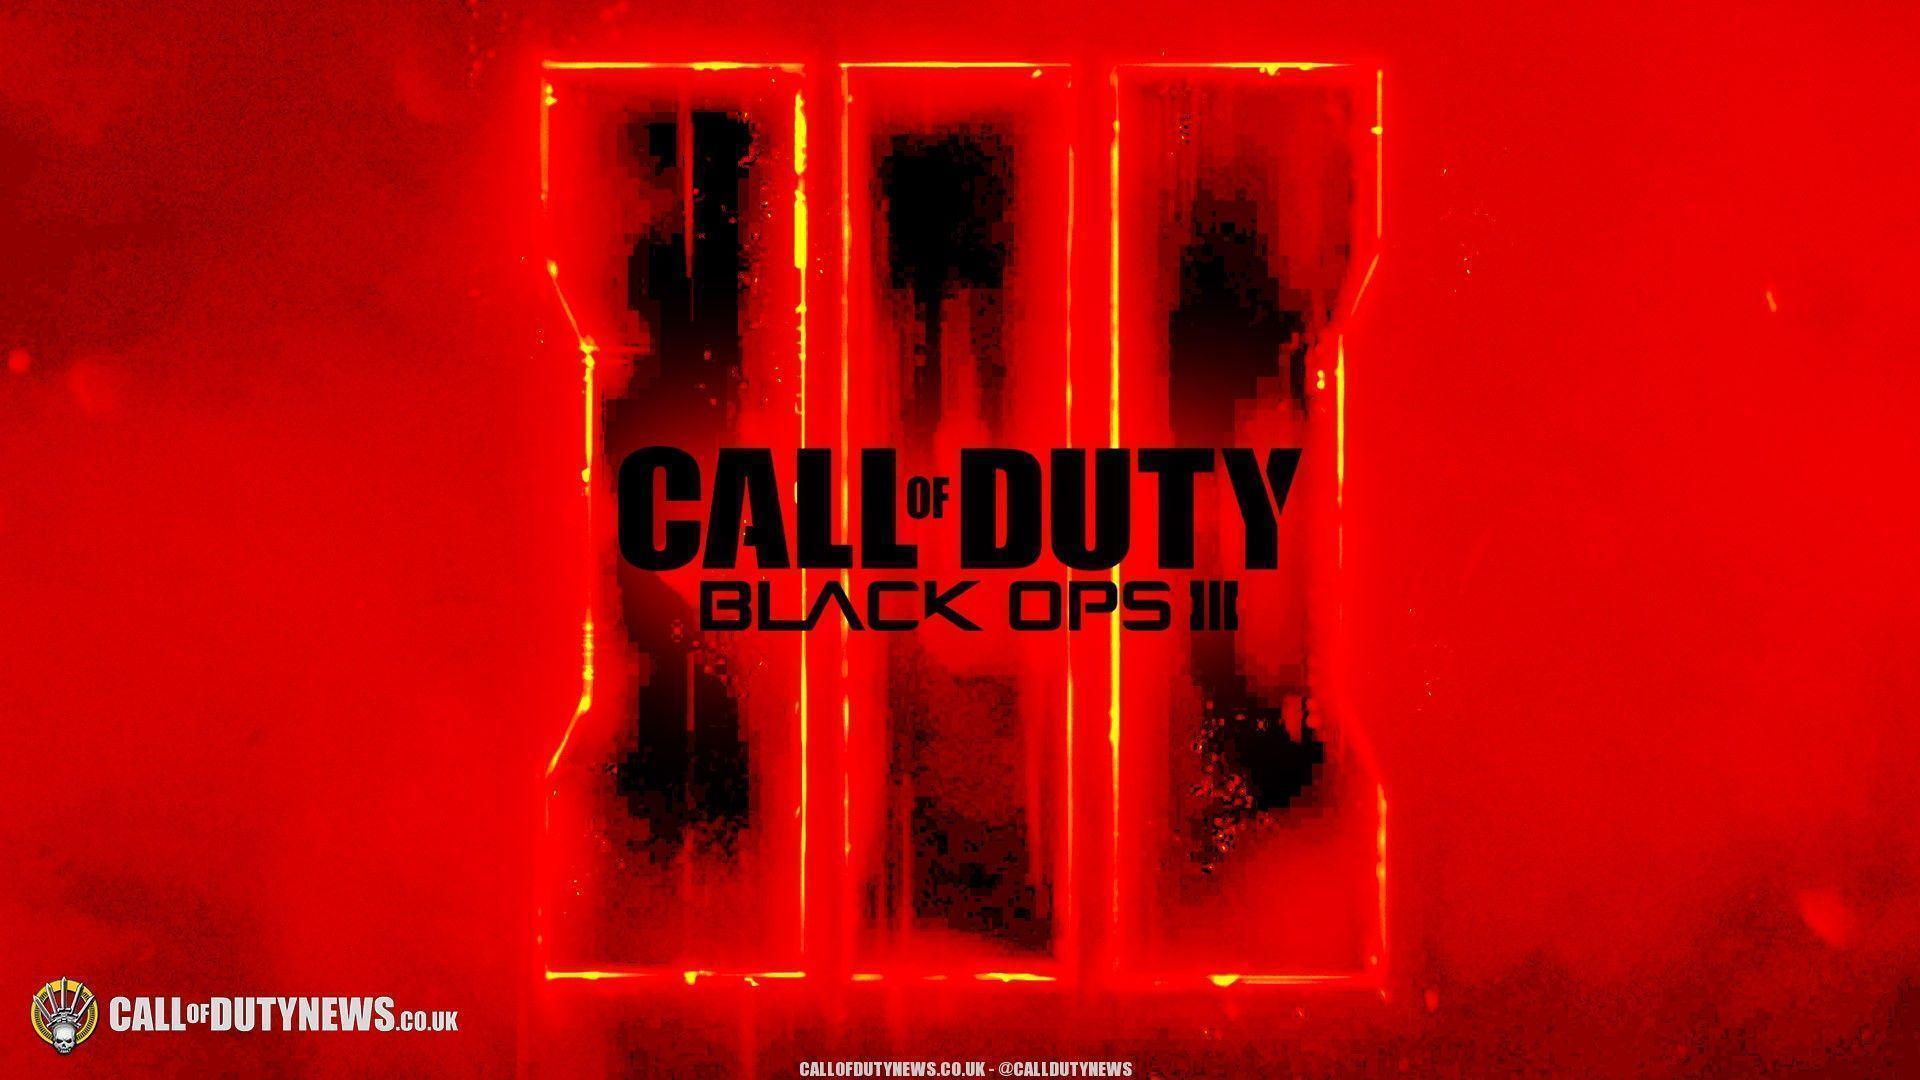 Call Of Duty Black Ops 3 Zombie wallpaper – wallpaper free download